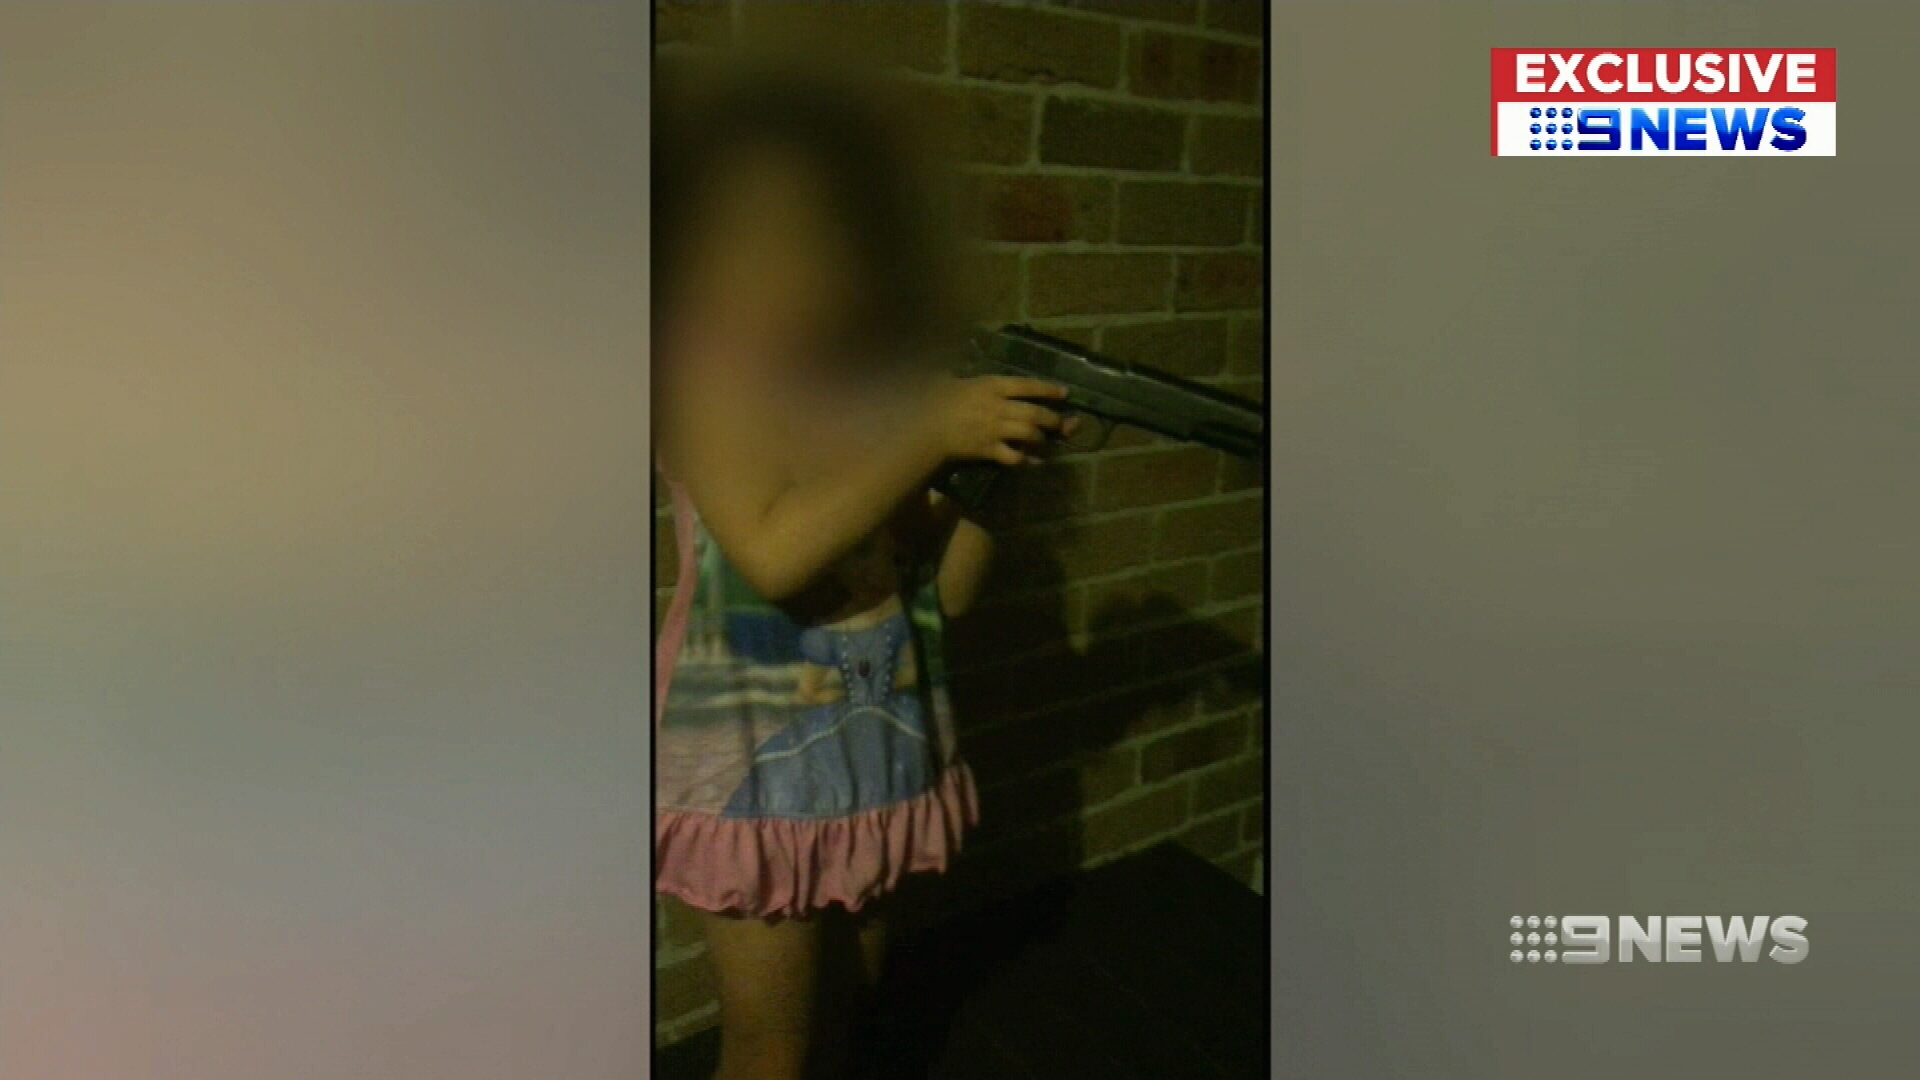 Father jailed for allowing daughter to play with pistol